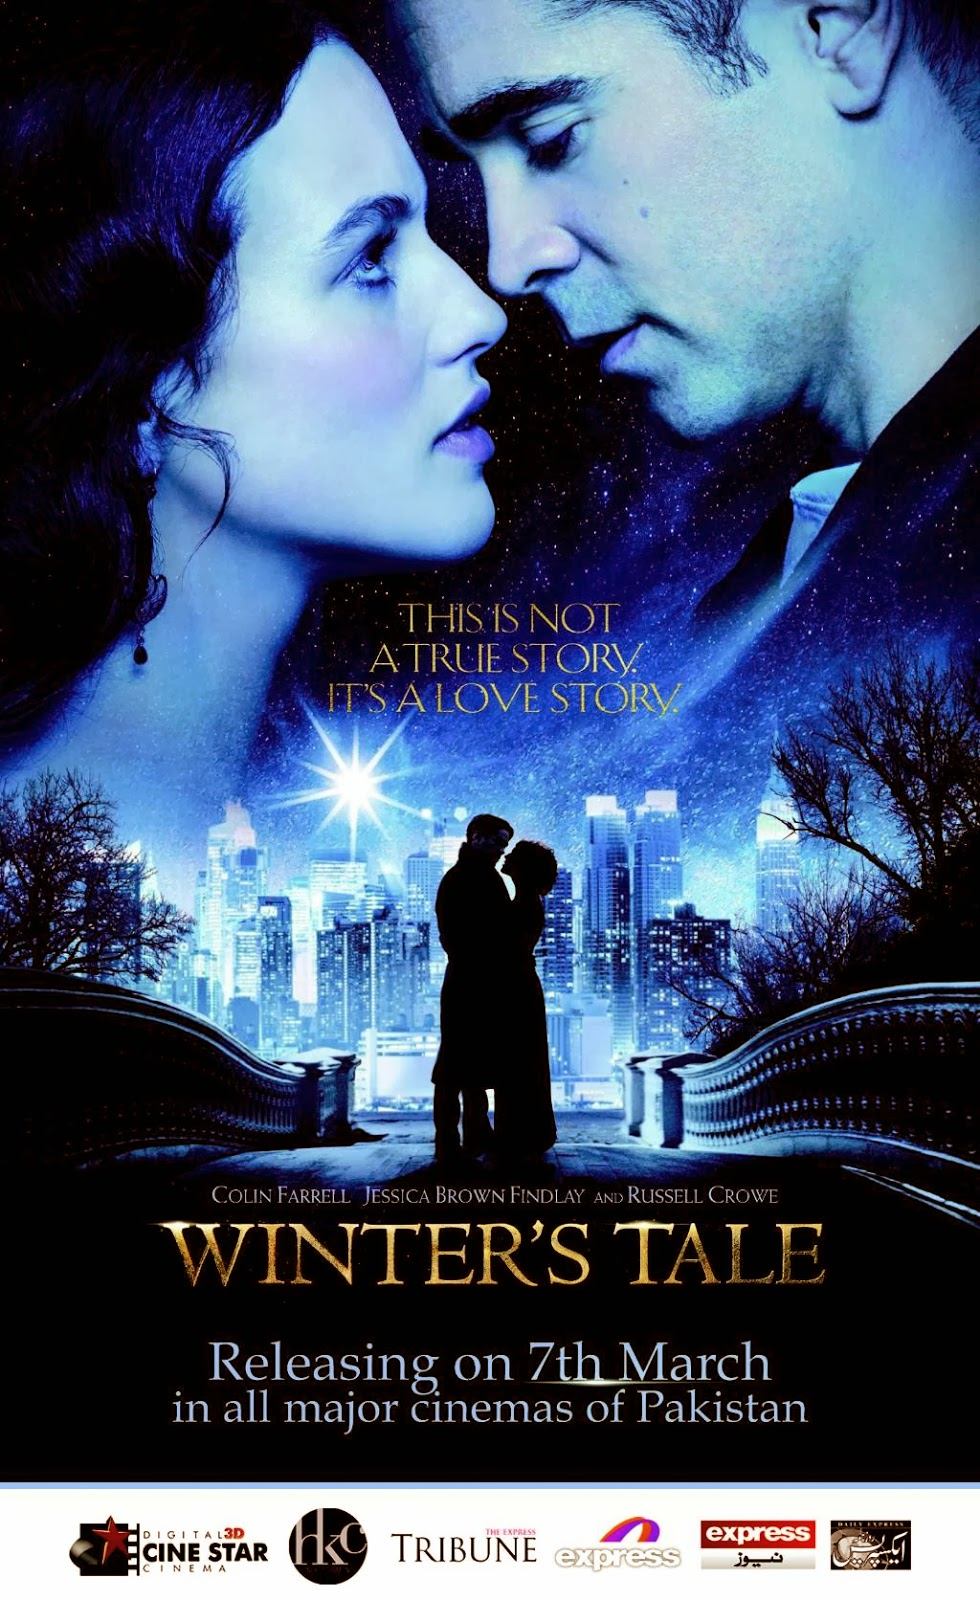 Winters Tale Cine Star 3D Cinema Digital HKC, Tribune, Express, Express News